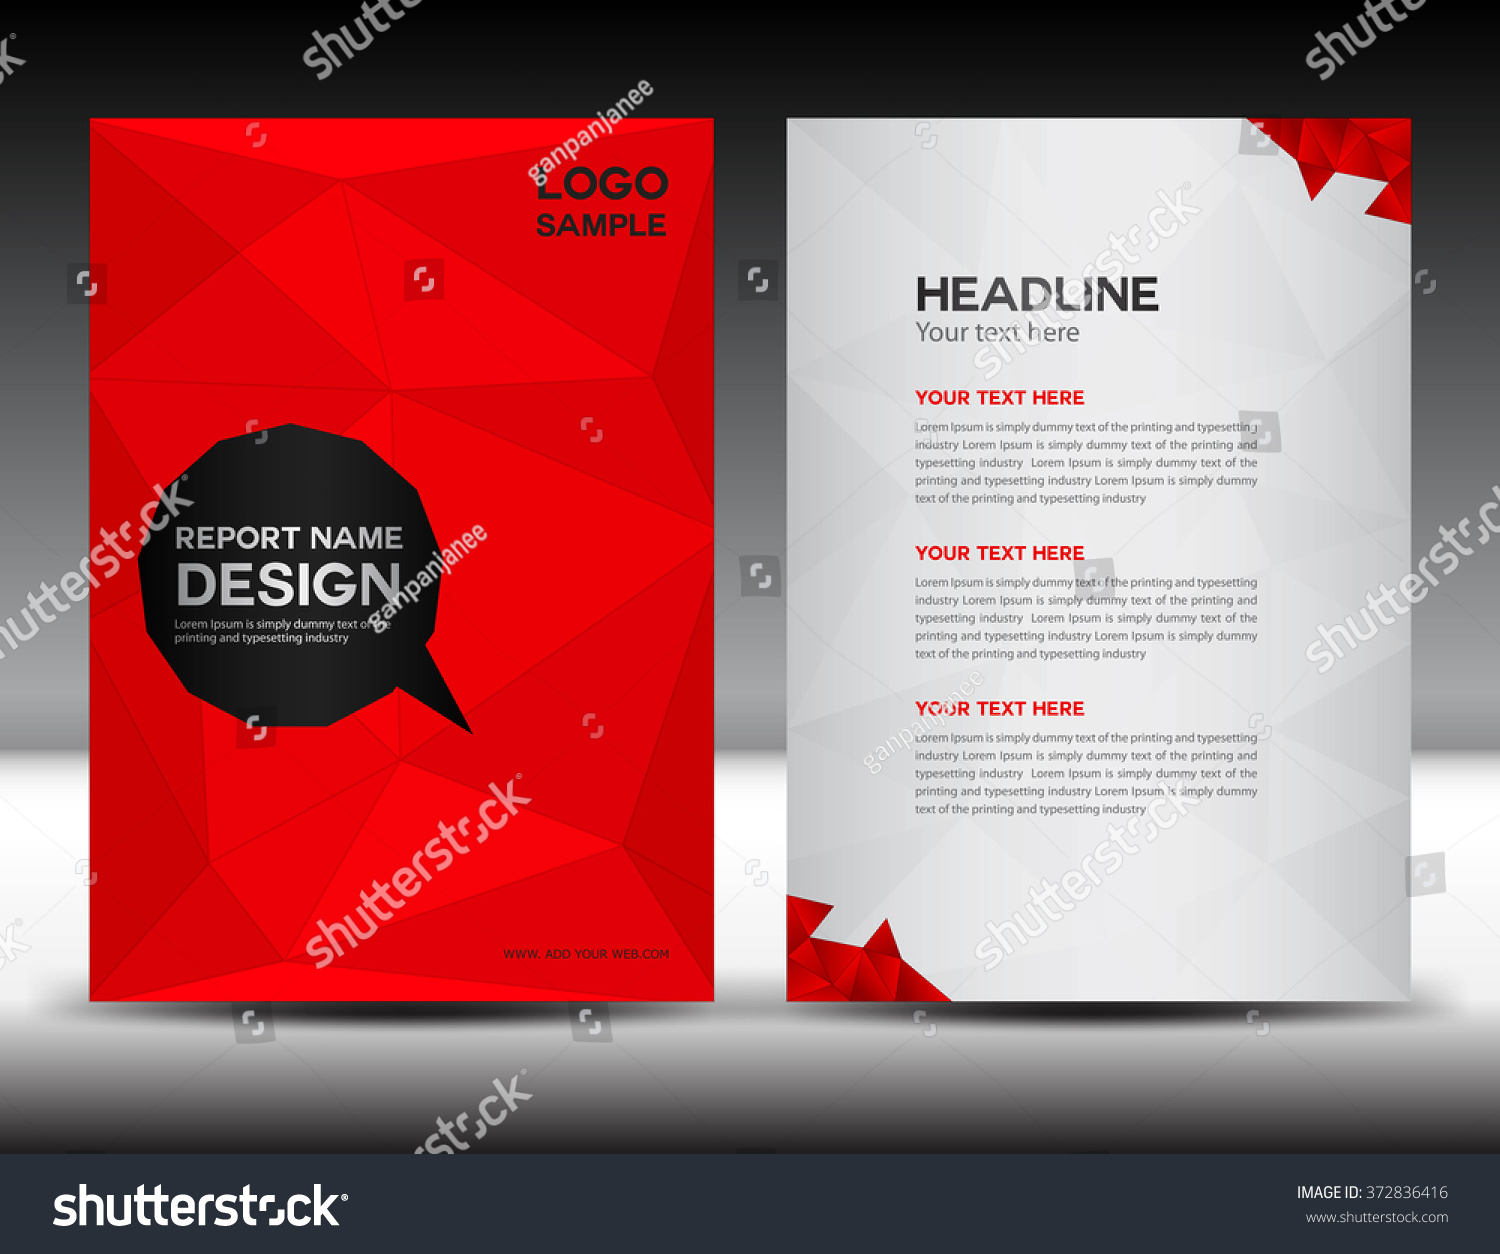 brochure cover design - red cover design annual report template stock vector